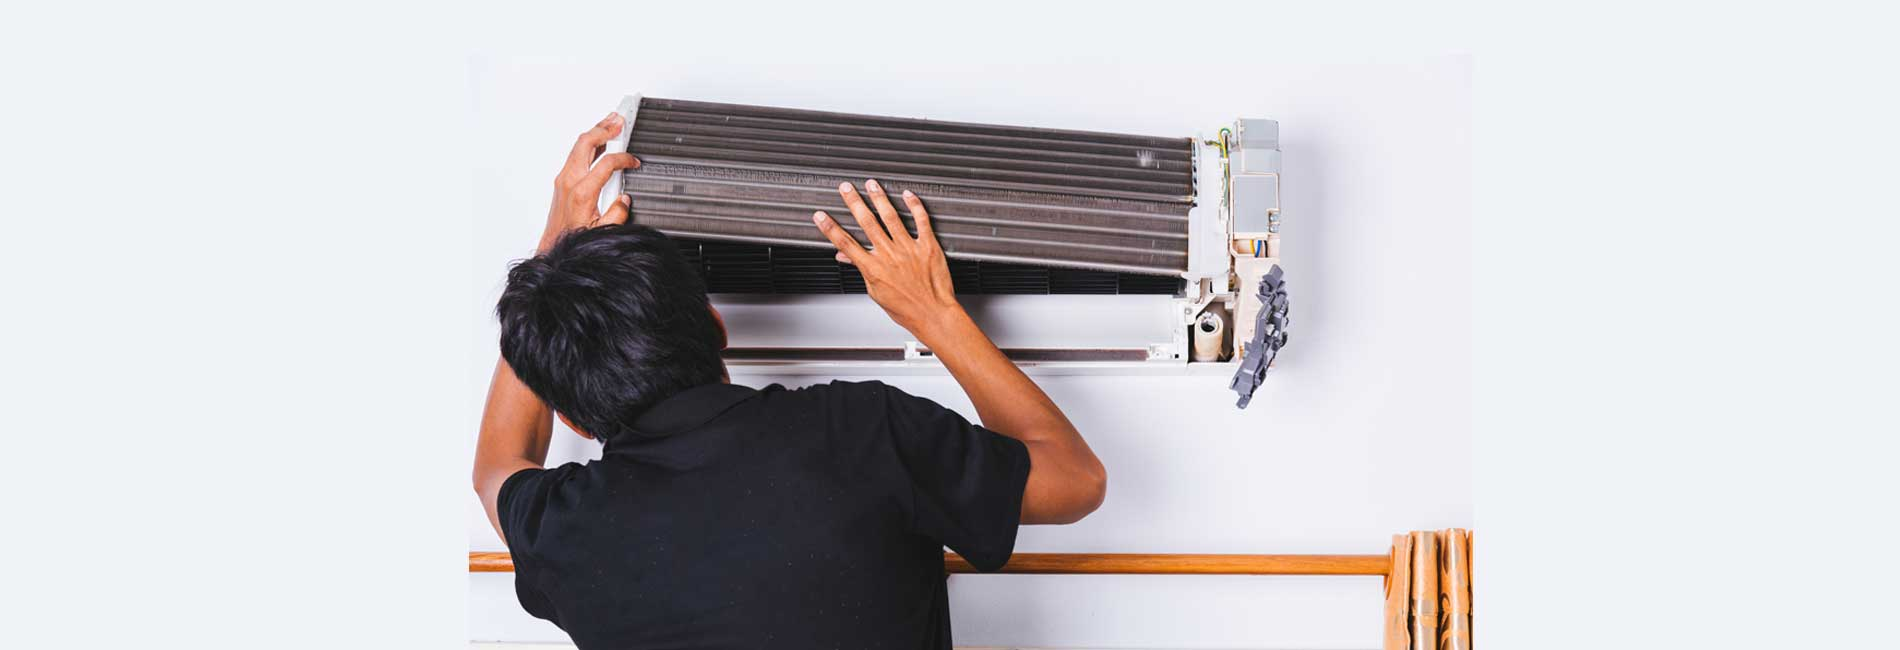 Daikin Air Condition Repair in Rajakilpakkam